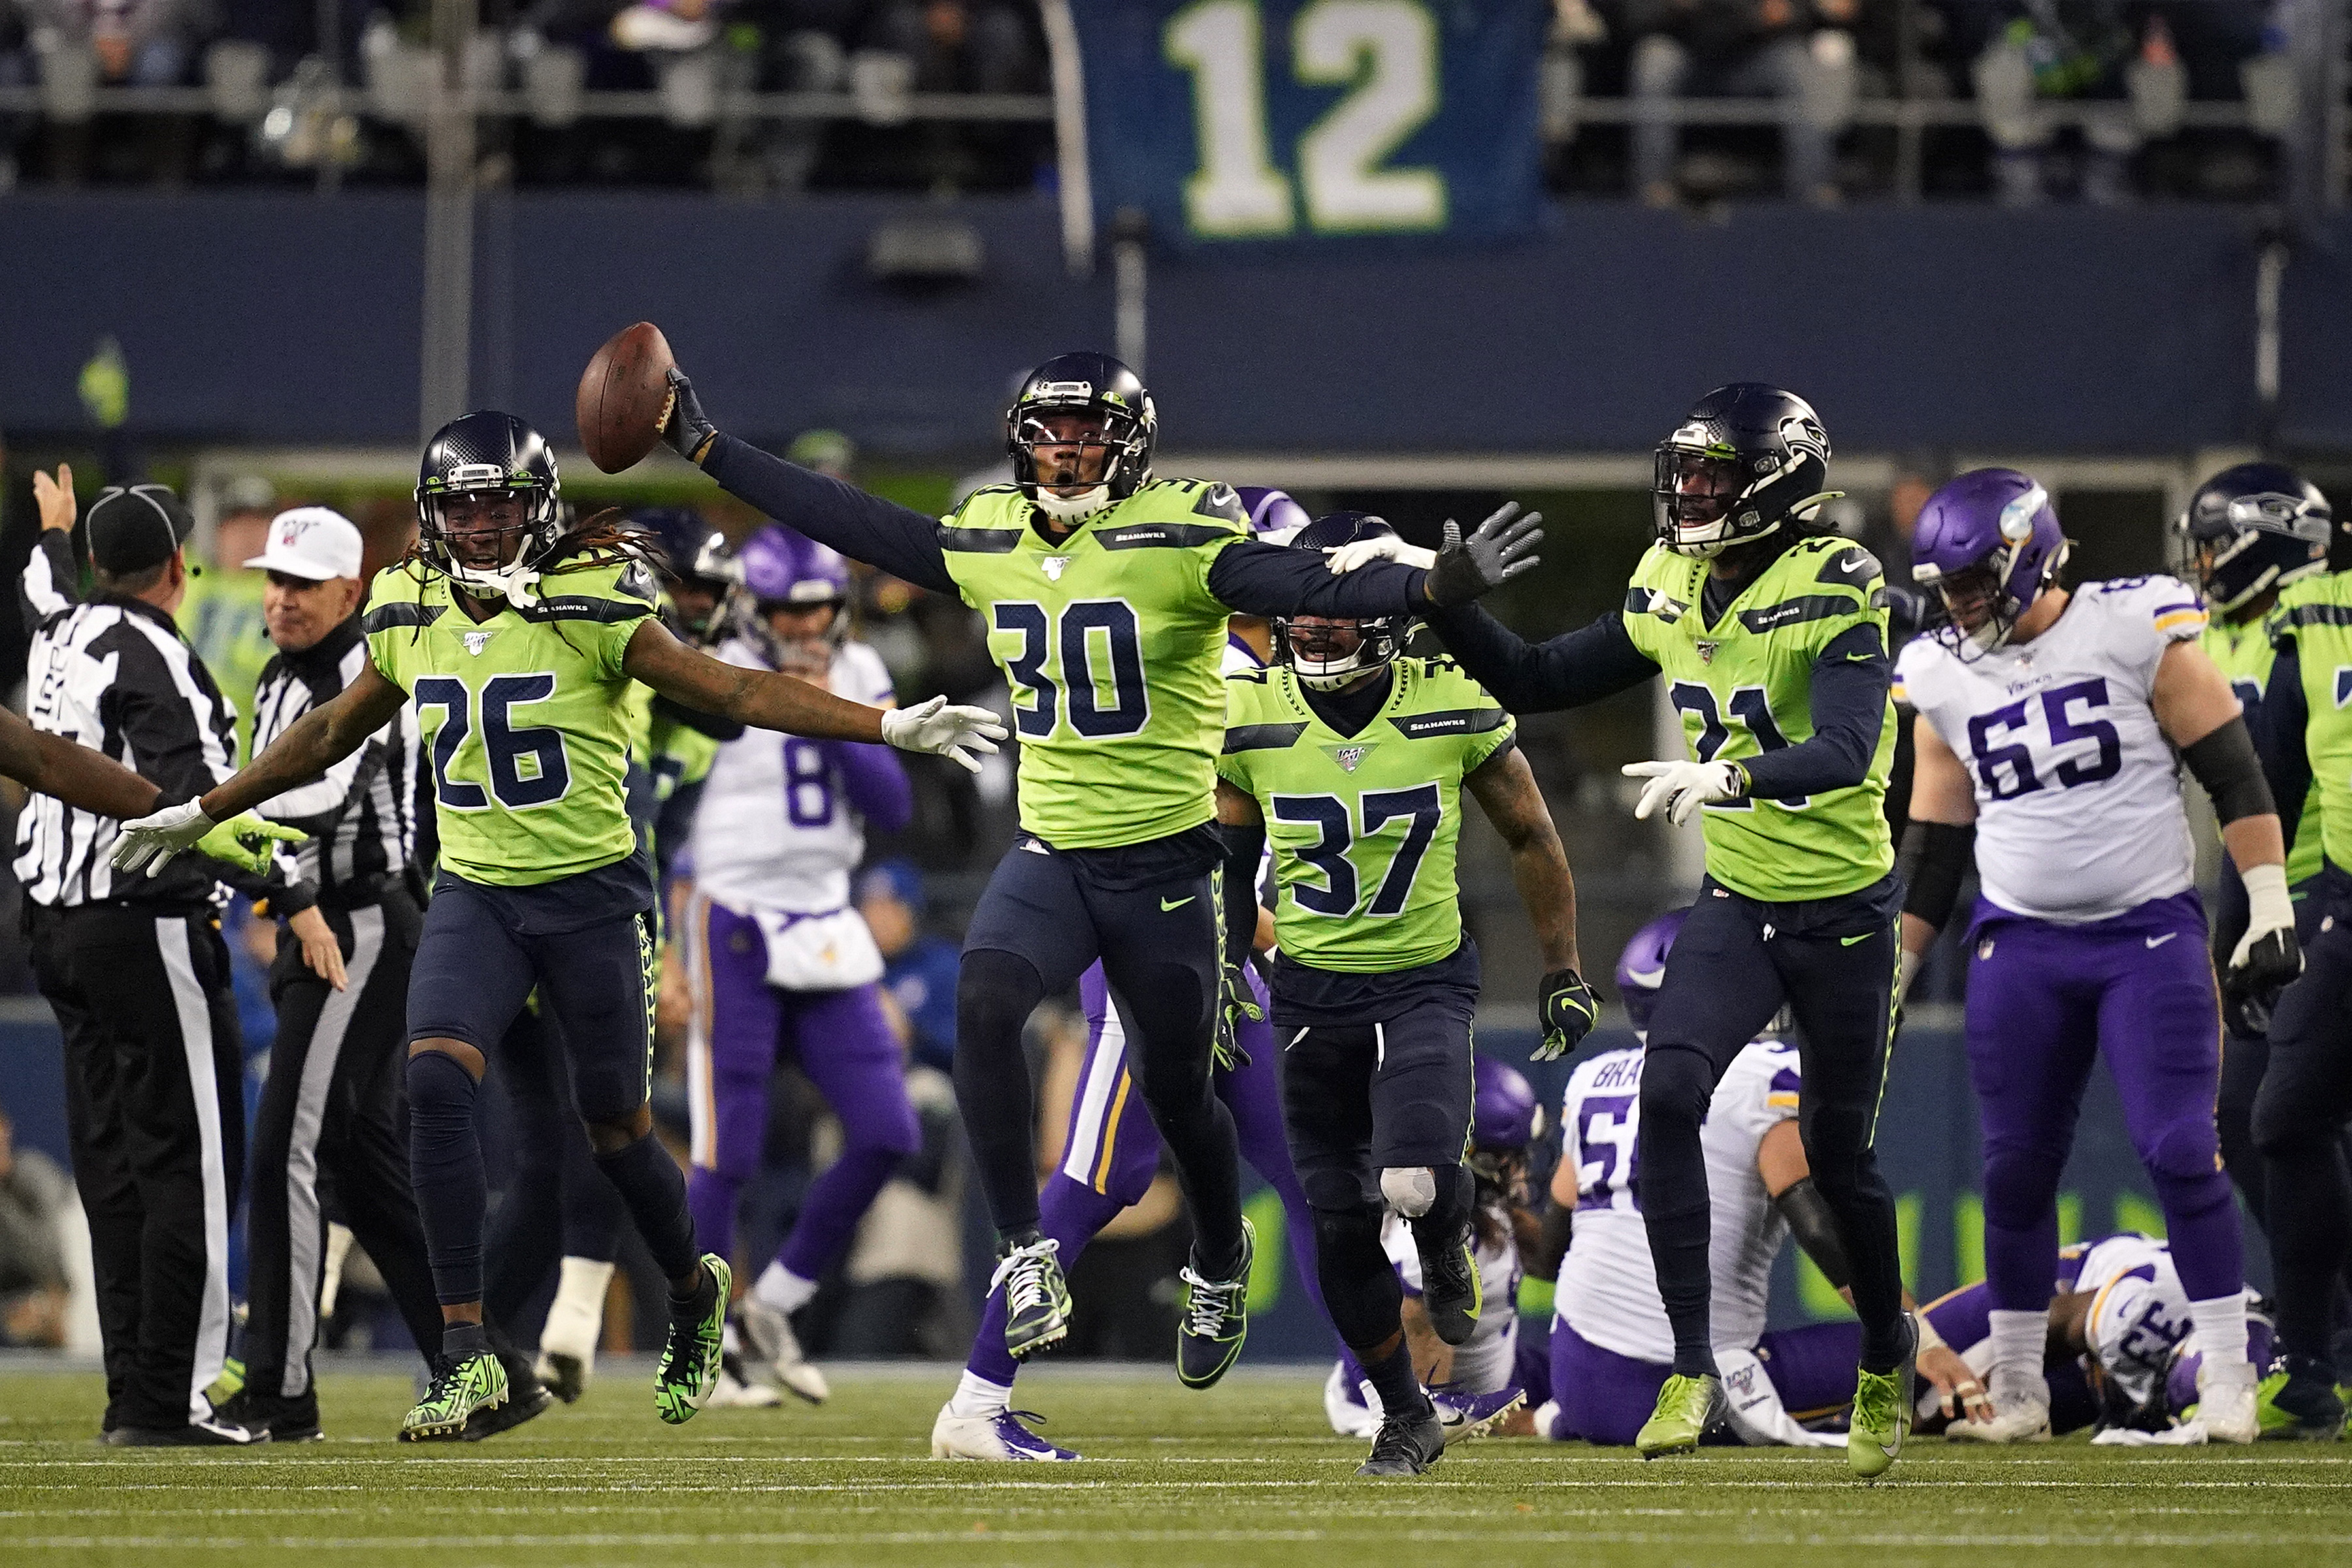 The Minnesota Vikings lose on the road to the Seattle Seahawks